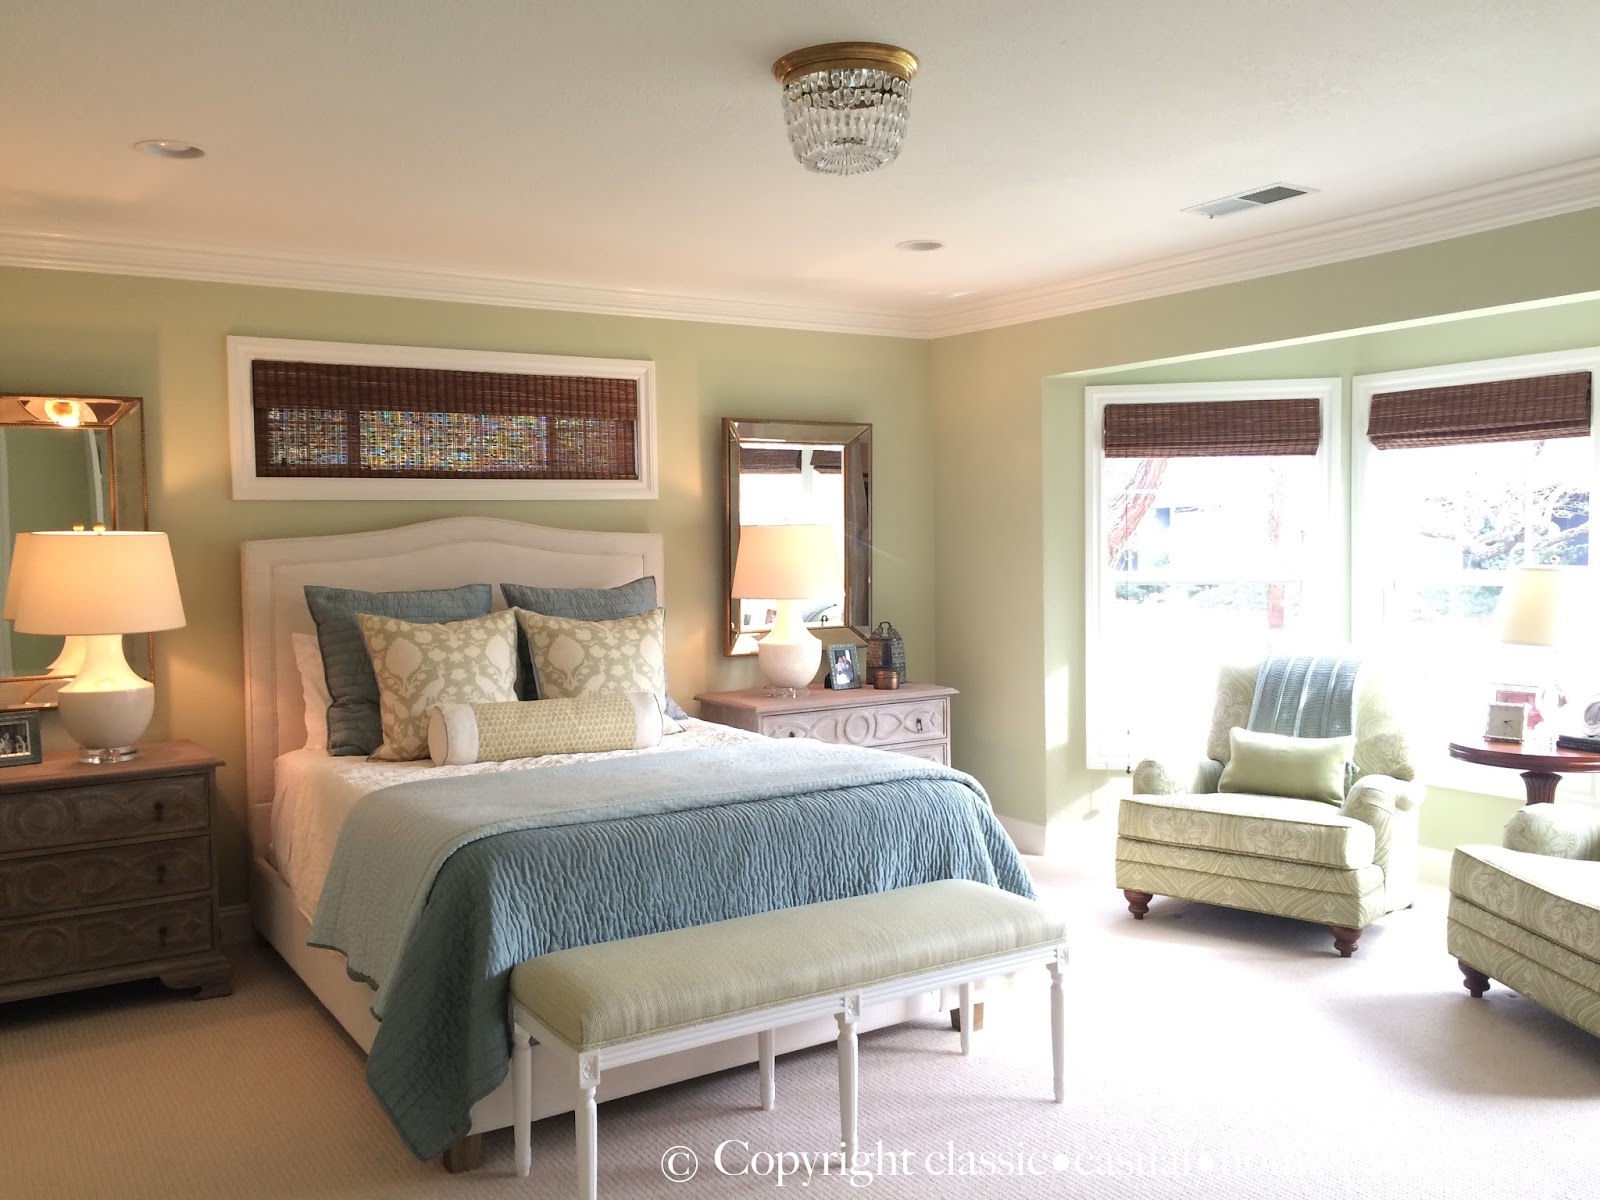 Classic casual home soft green and aqua blue master bedroom before and after Master bedroom ideas in blue